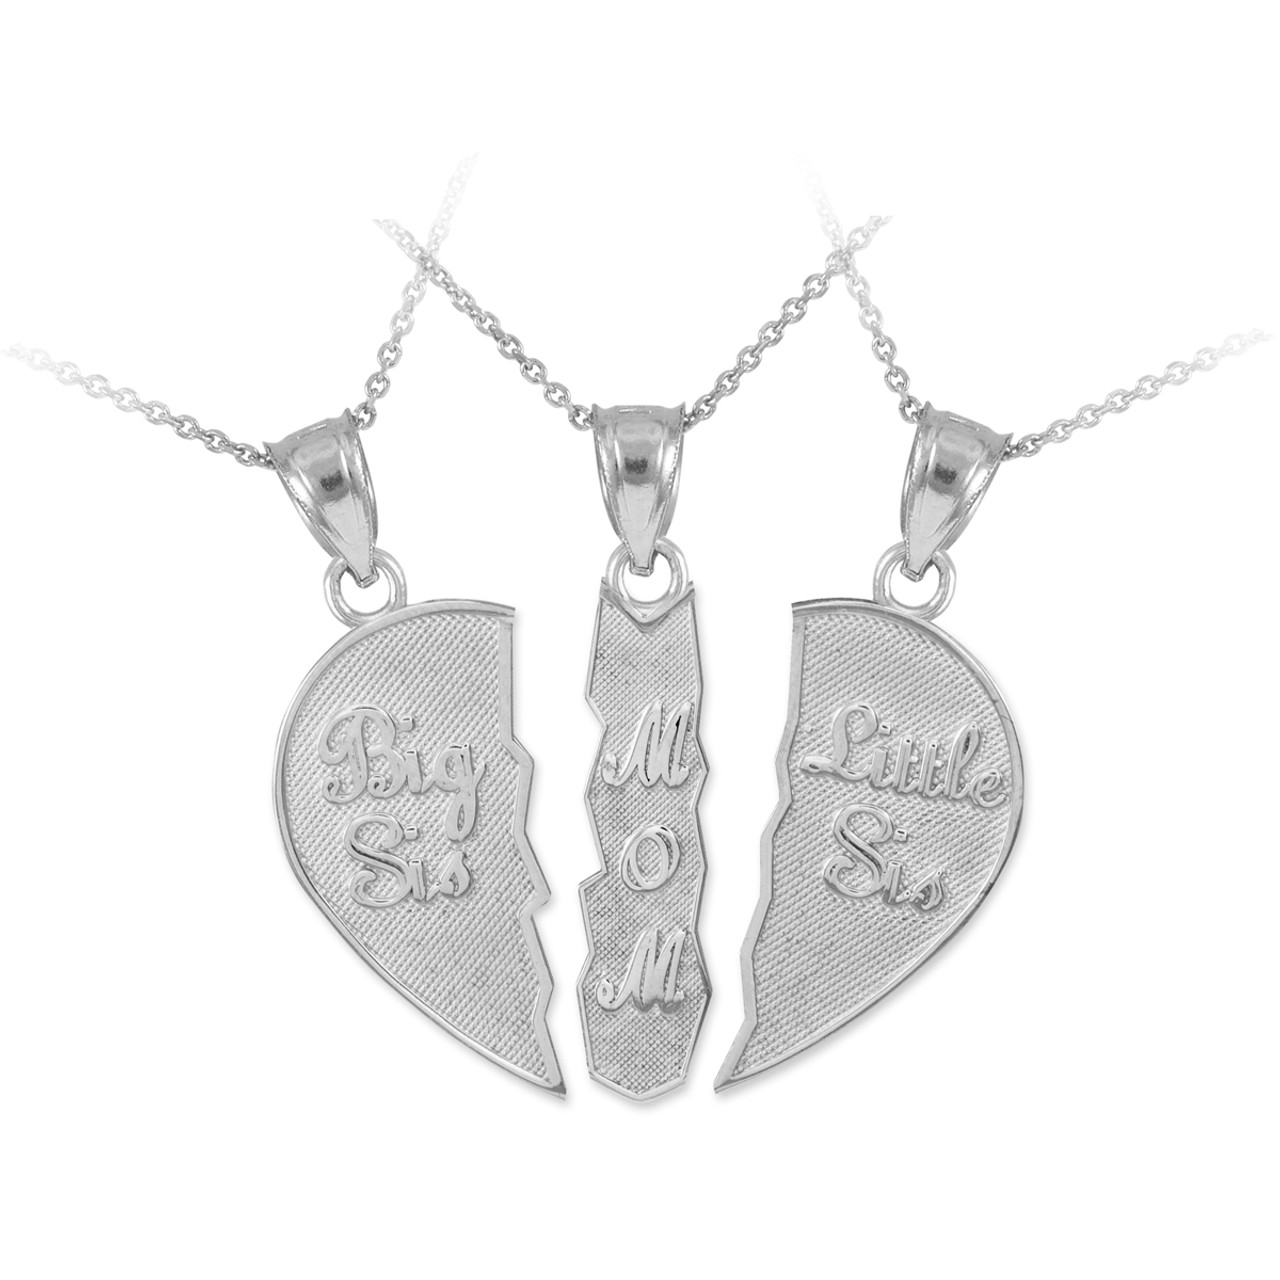 BESPMOSP Big Sis Lil Sis Mom Crystal Heart Pendant Necklace Set Gift for Sister Mothers Day Gift Family Jewelry